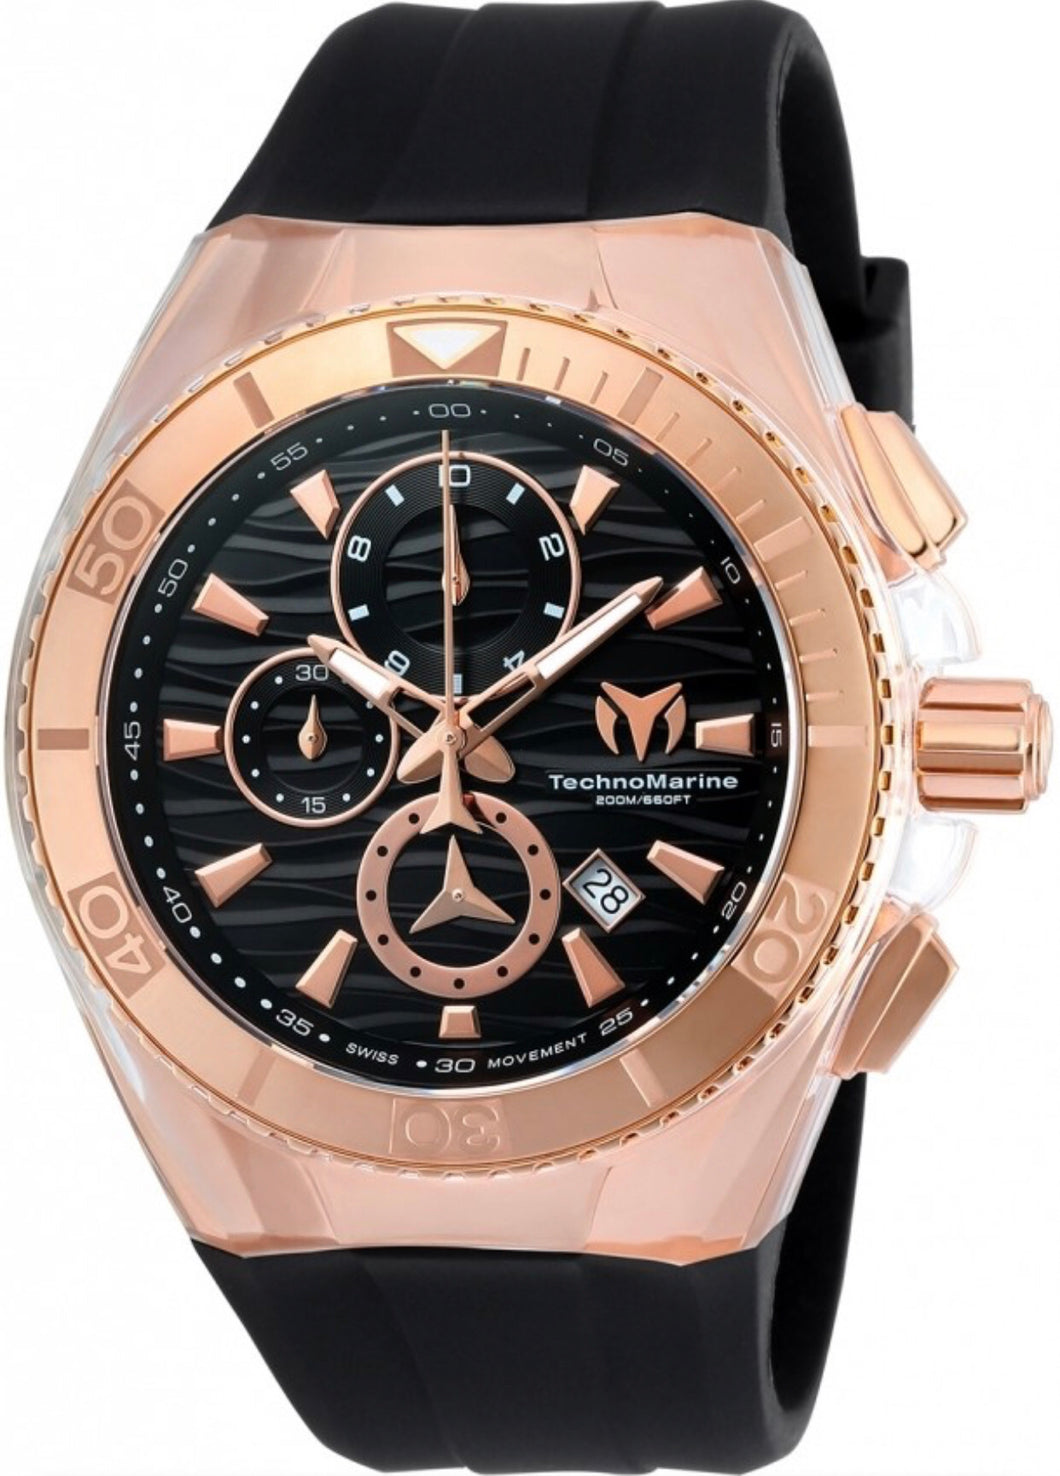 Technomarine Cruise Star Chronograph Quartz Black Dial Men's Watch TM-115048 - Boutique Watches & More